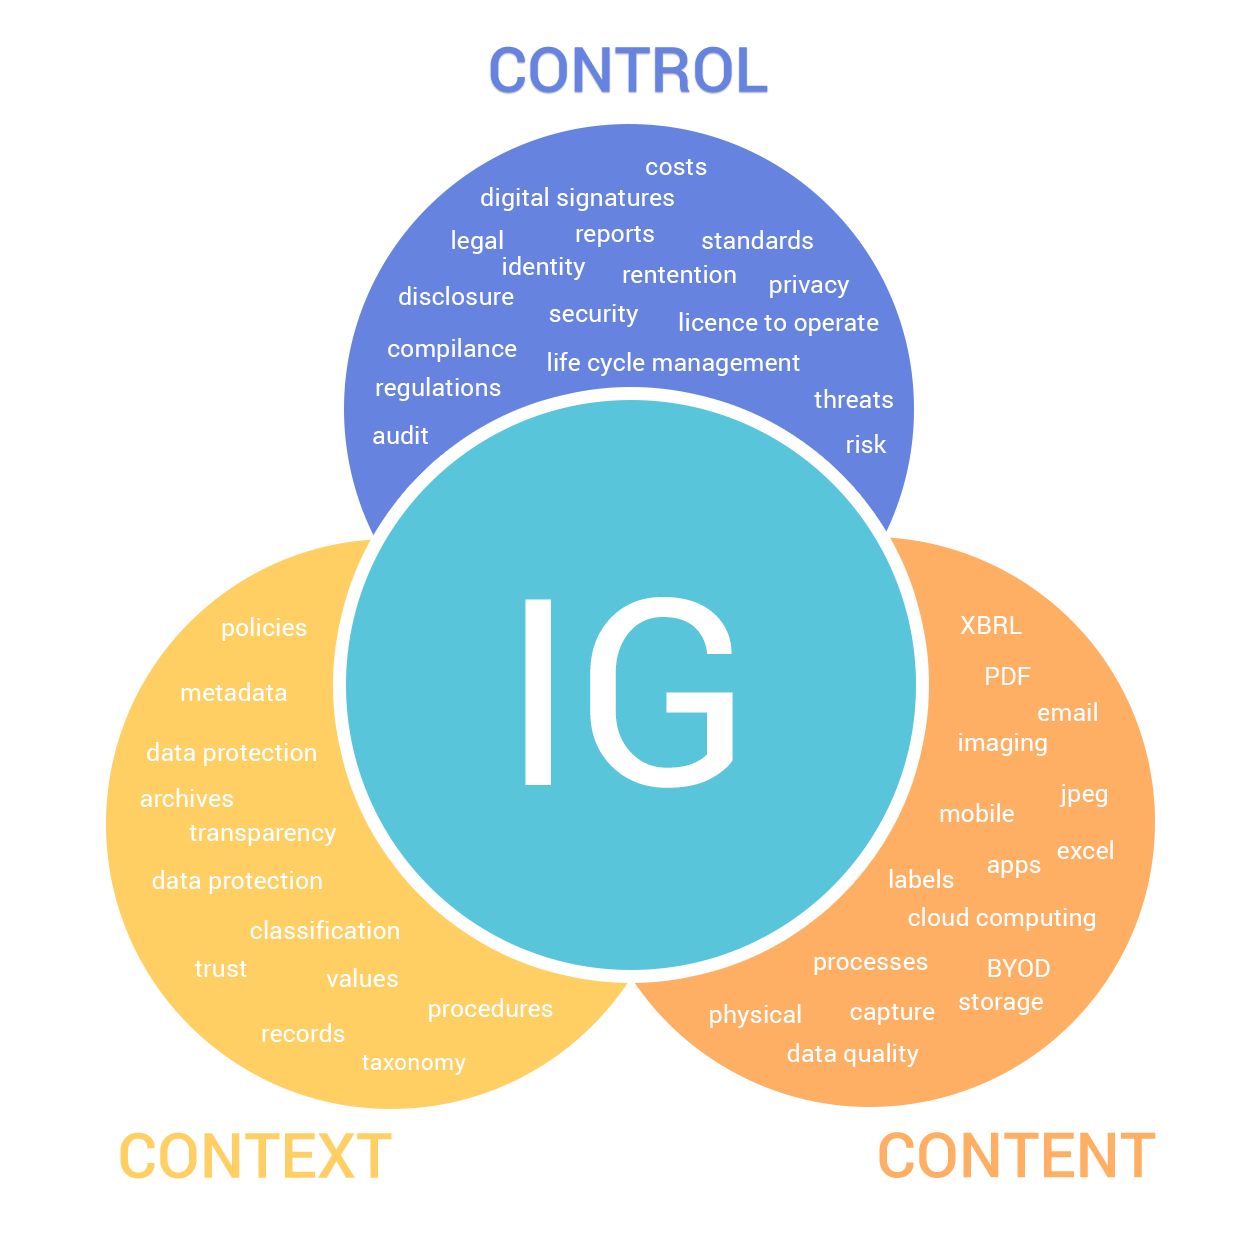 Click the image to see the components of information governance.